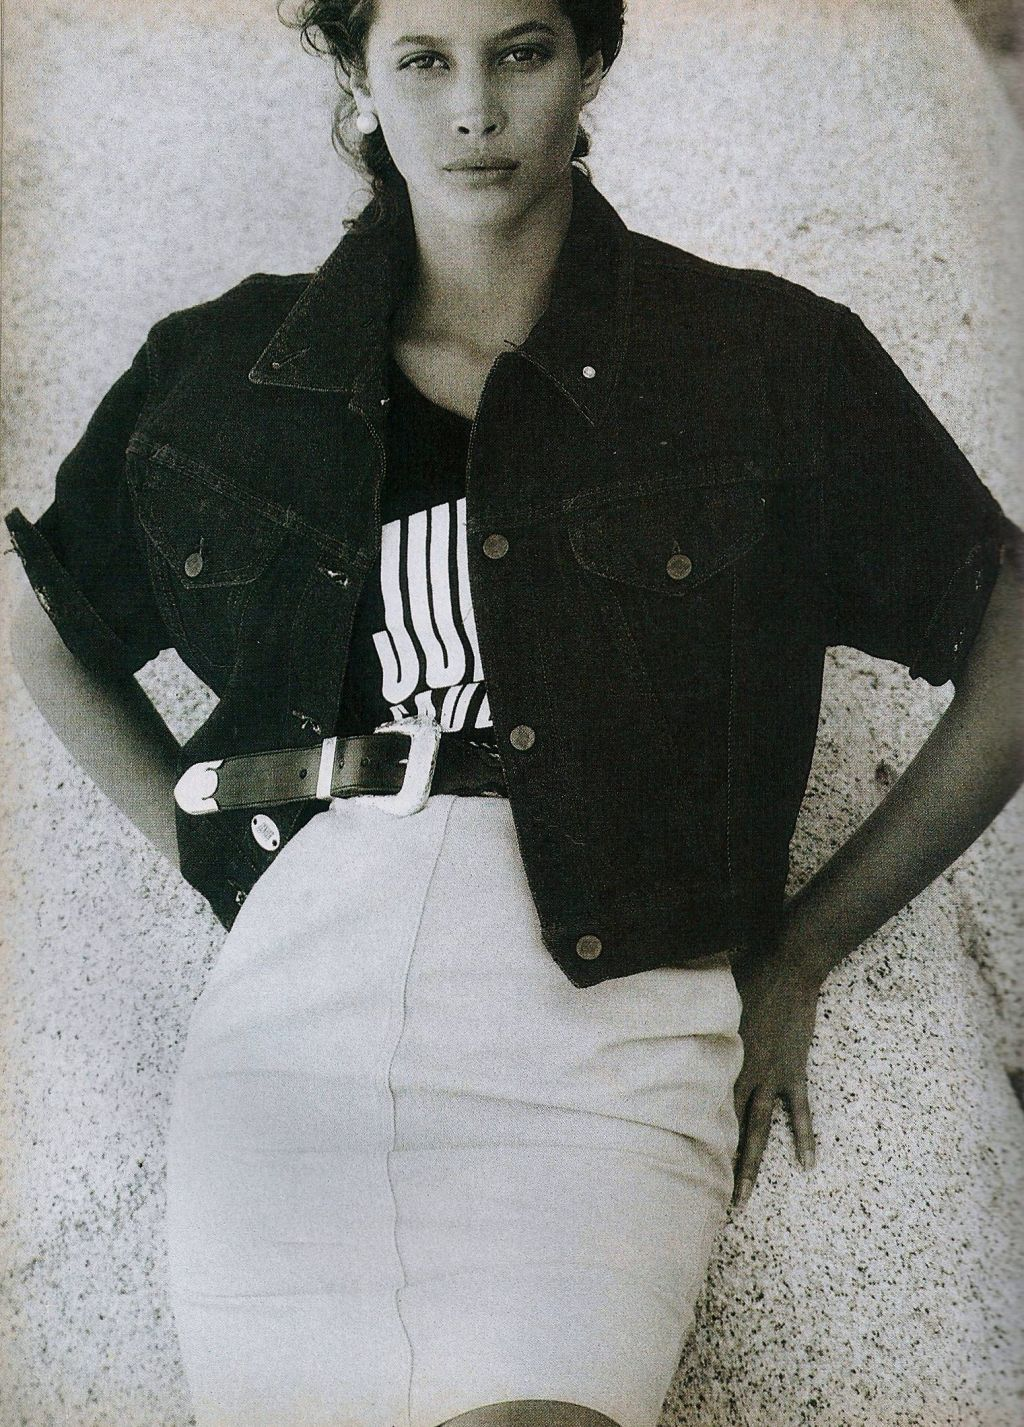 US Vogue April 1988 free spirit, summer style Model: Christy Turlington Ph: Patrick Demarchelier Hair: Sam McKnight Makeup: Mary Greenwell Stylist: No credit